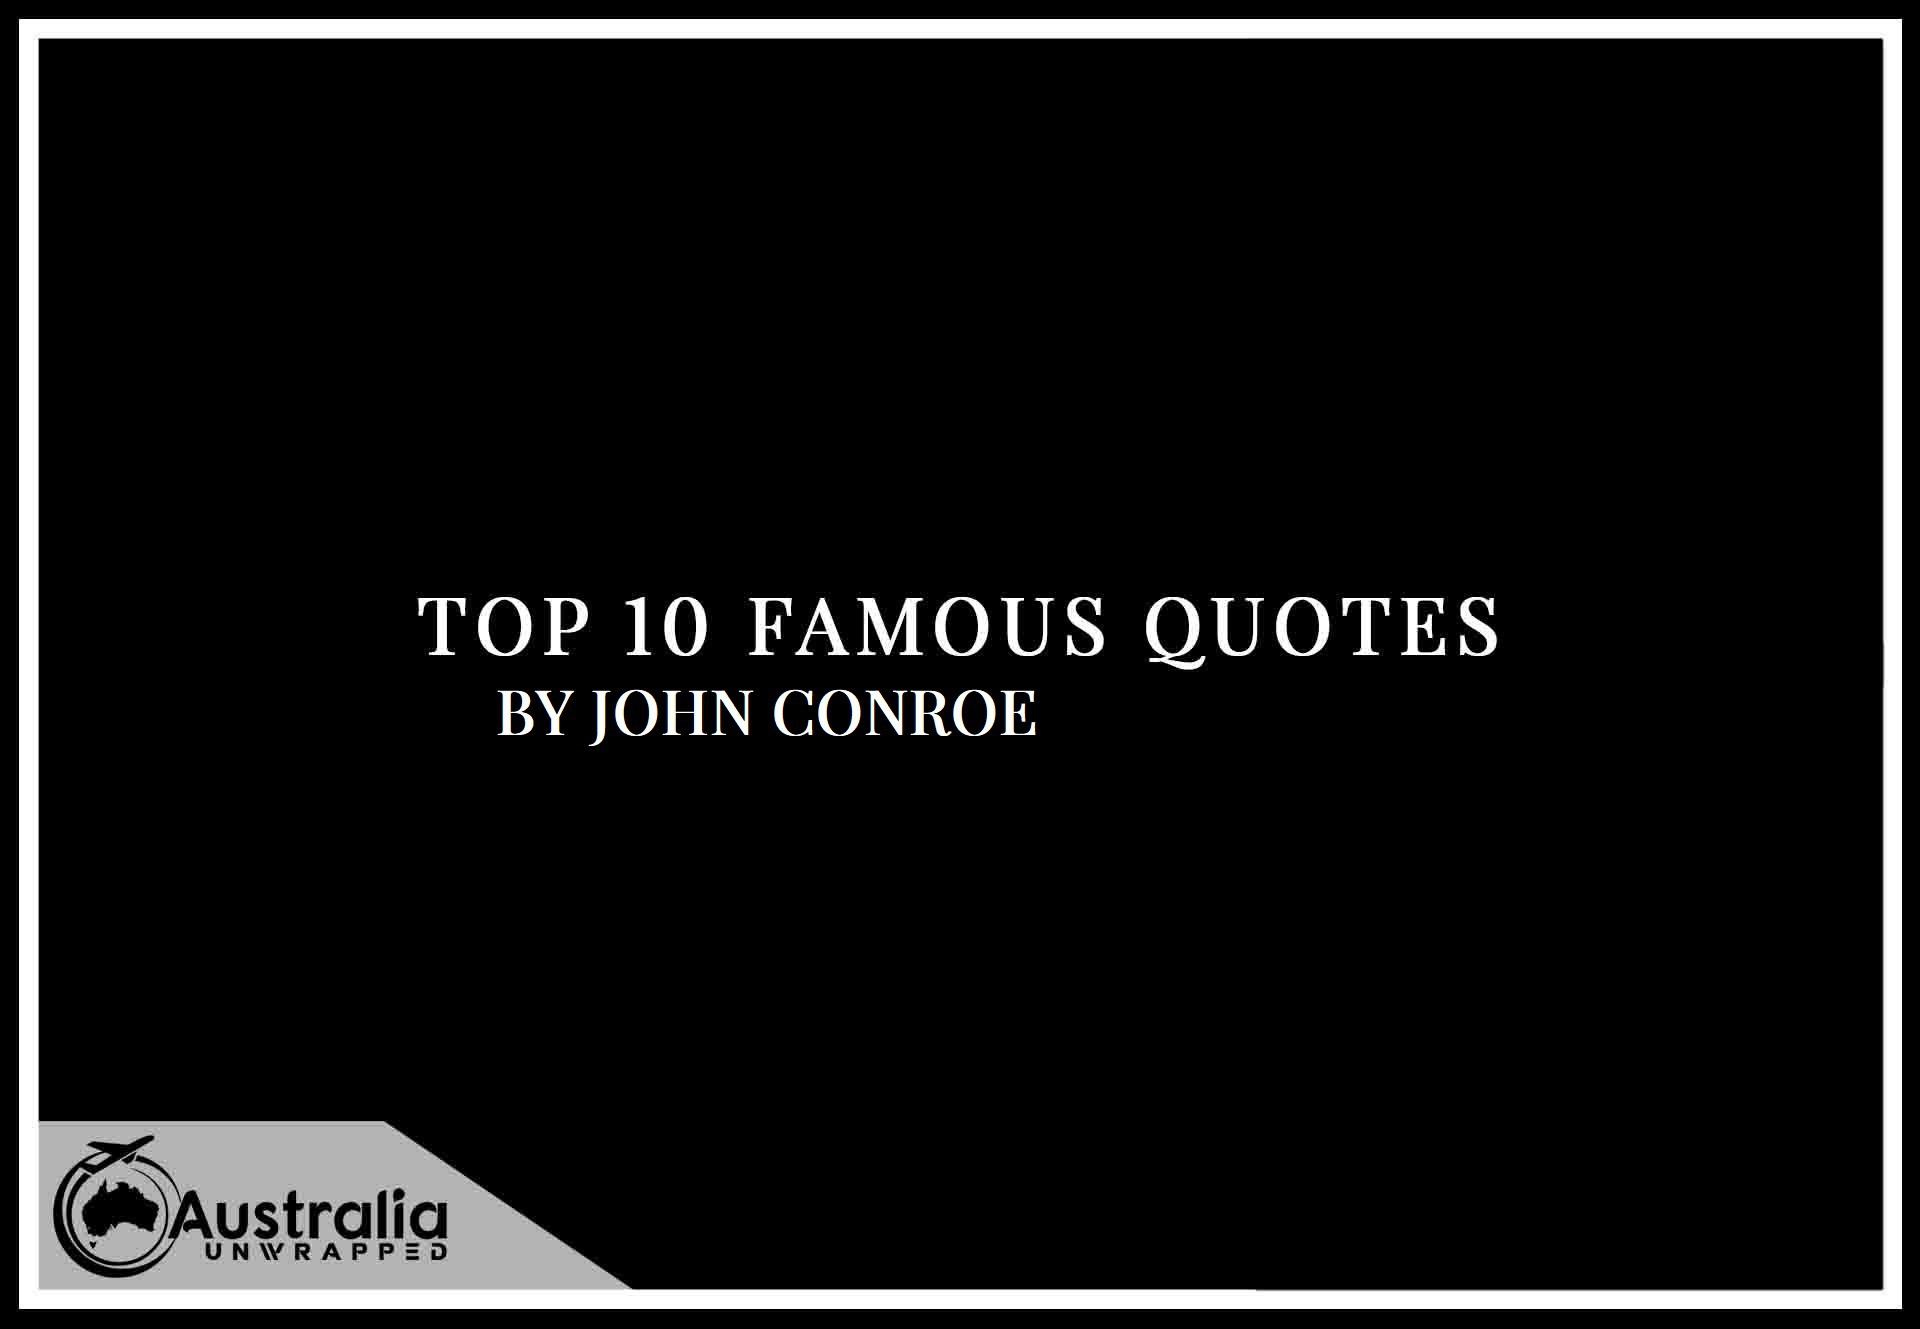 Top 10 Famous Quotes by Author John Conroe